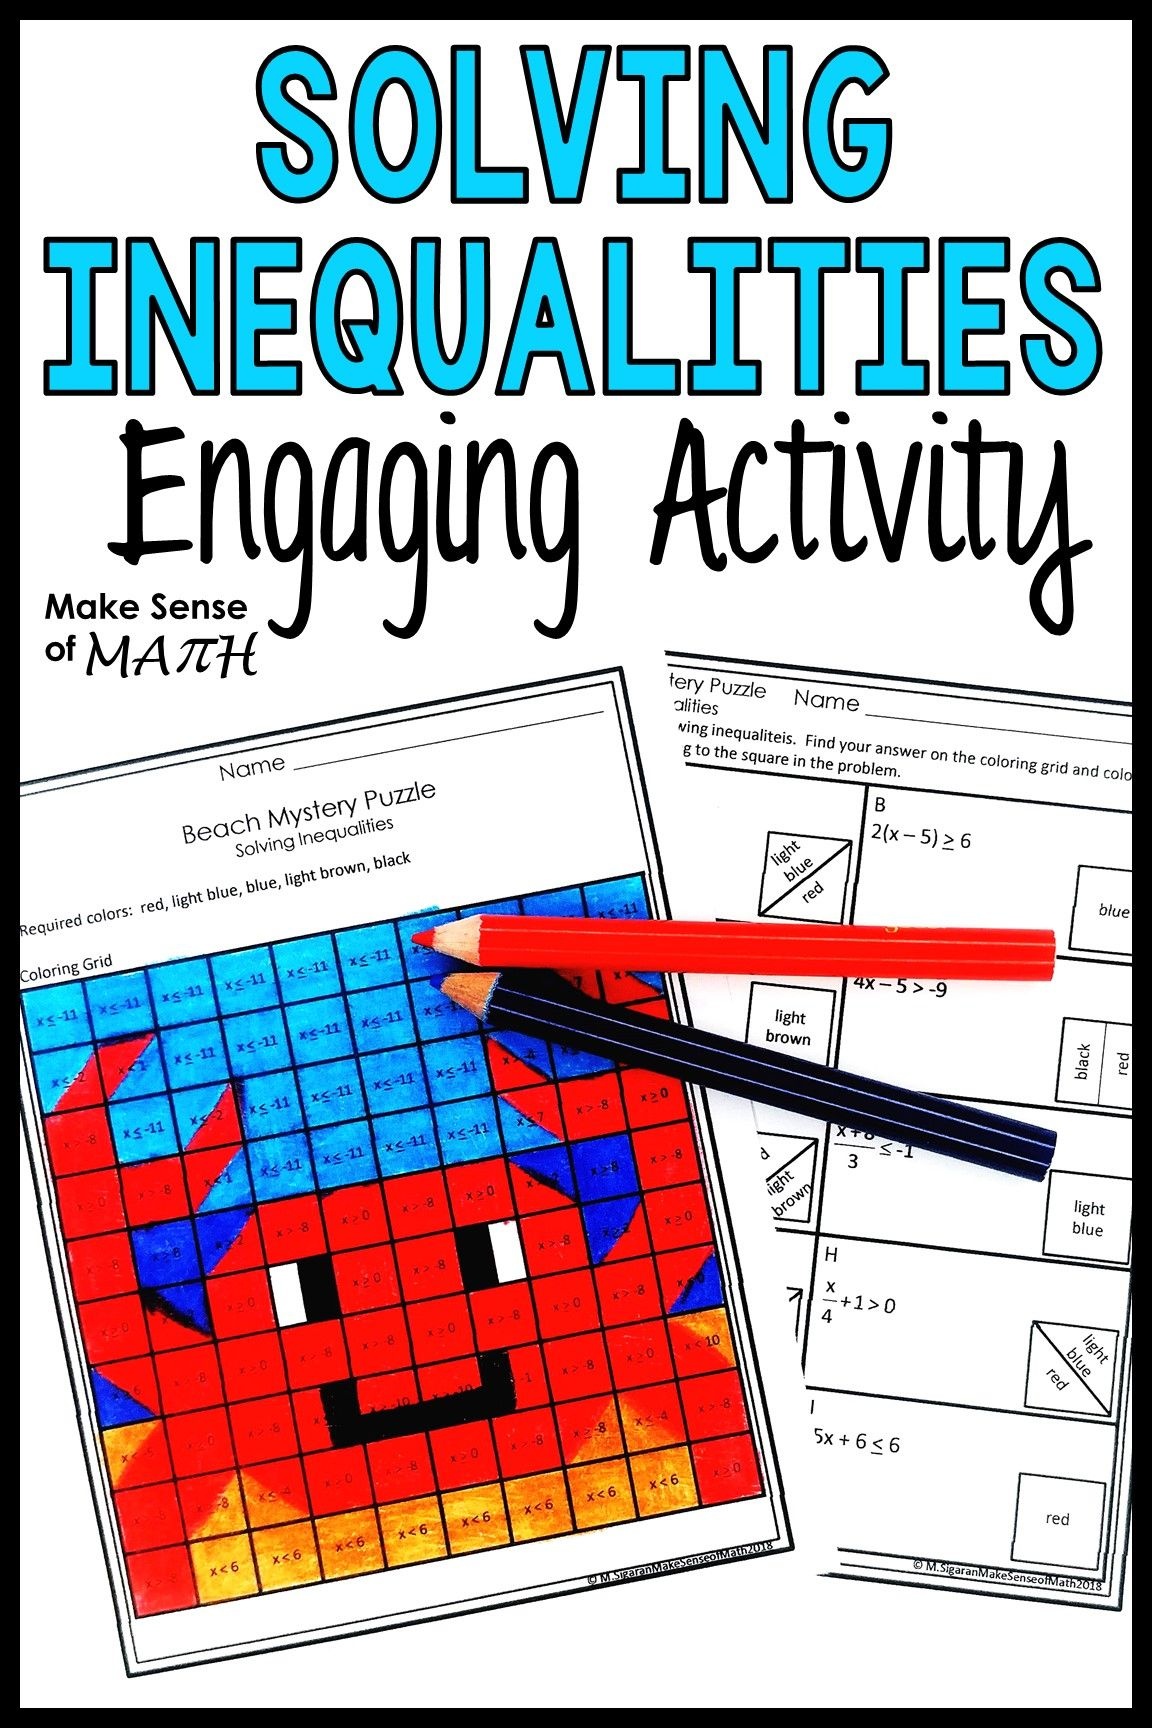 Solving Inequalities Activity In